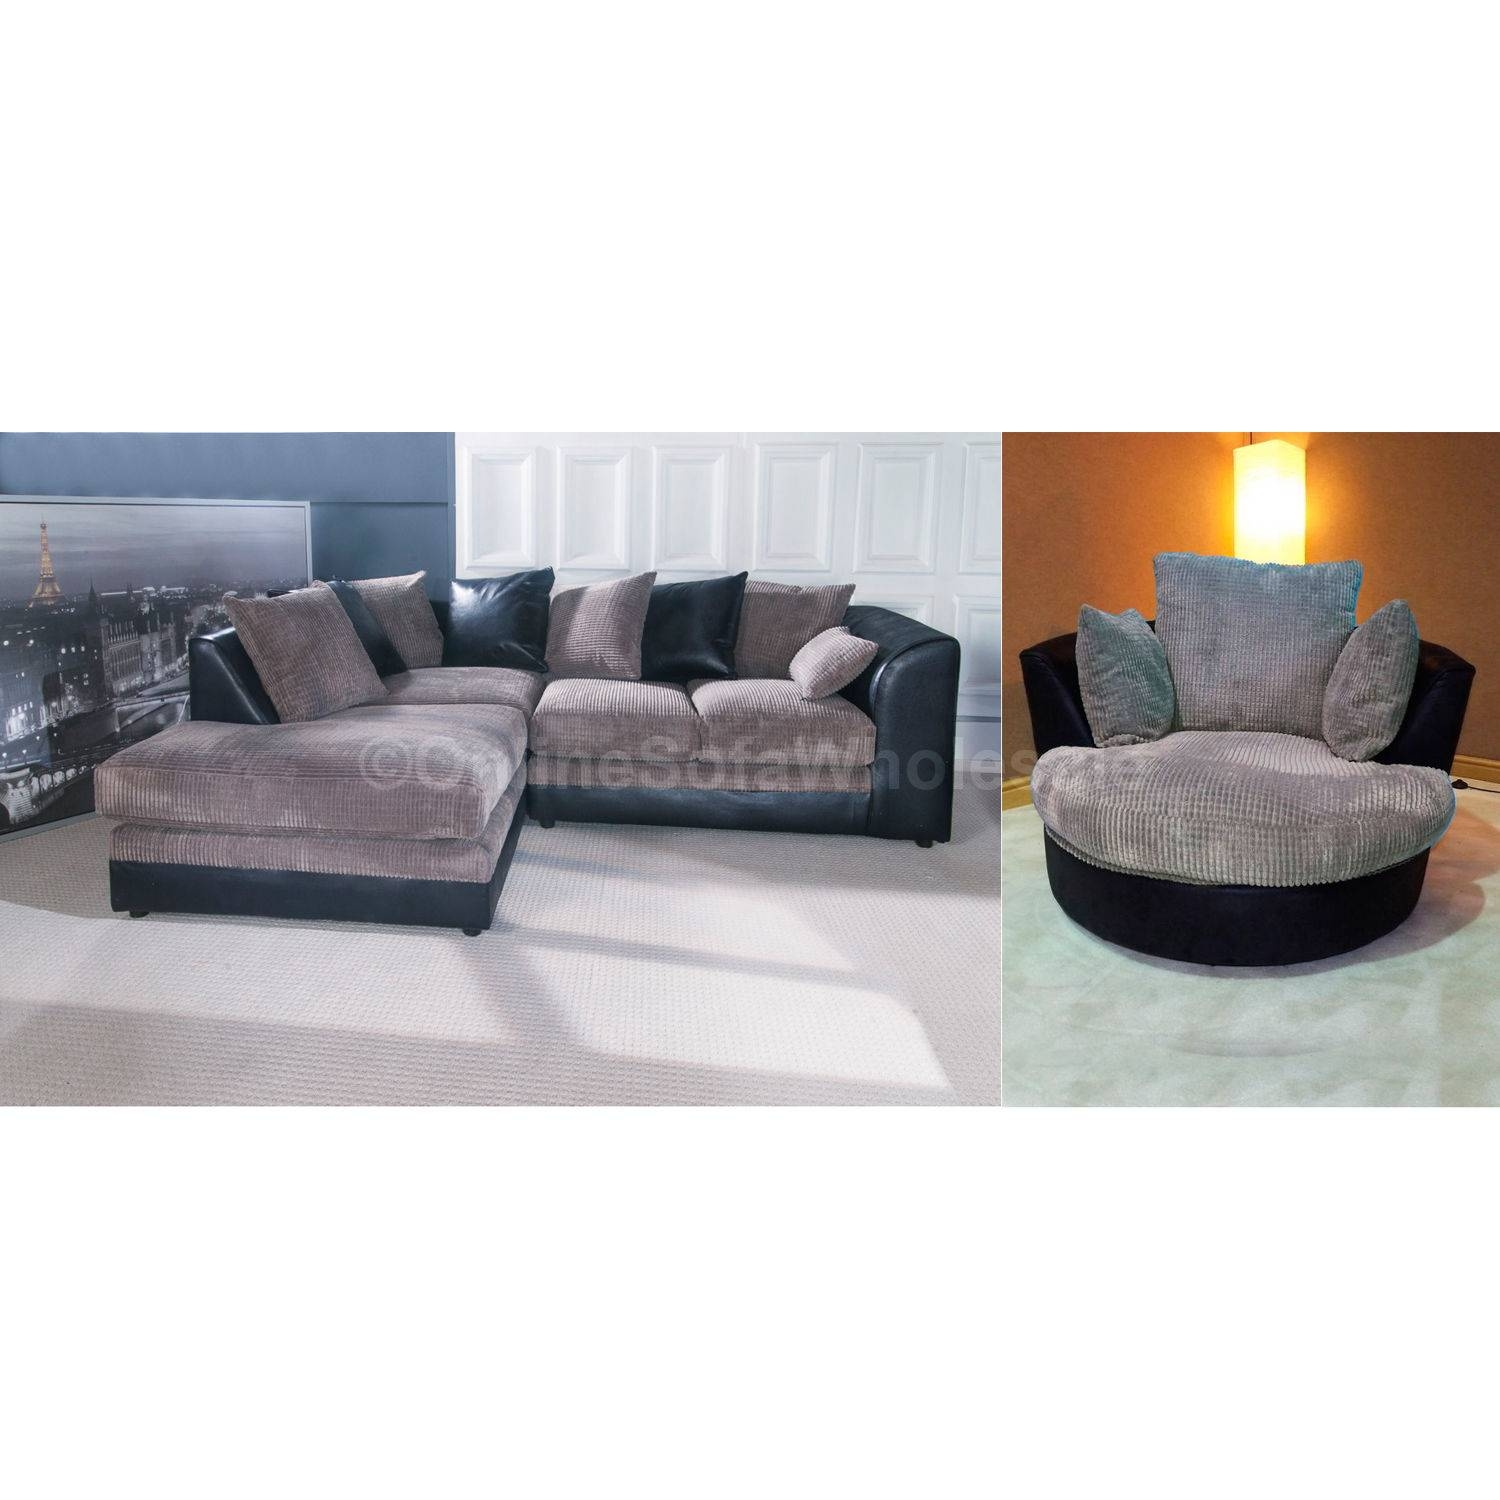 Corner Sofa With Swivel Chair Best Selling Ur7 | Umpsa 78 Sofas intended for Sofa With Swivel Chair (Image 12 of 30)